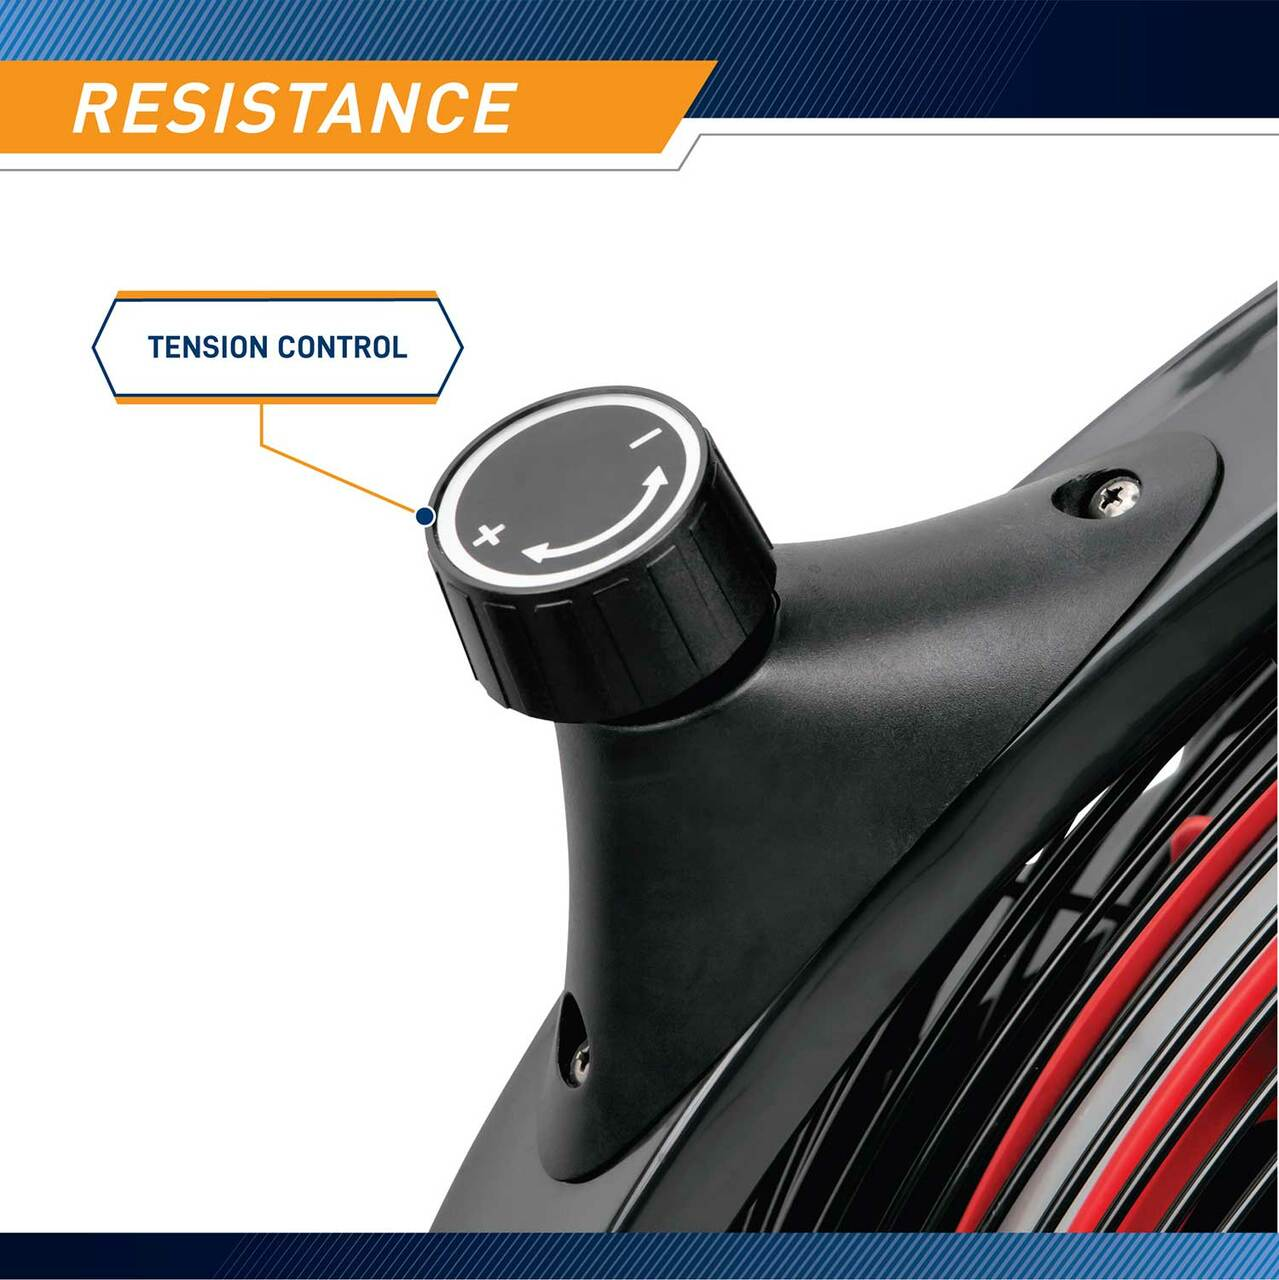 The Marcy Fan Bike NS-1000 has adjustable resistance at the twist of a knob